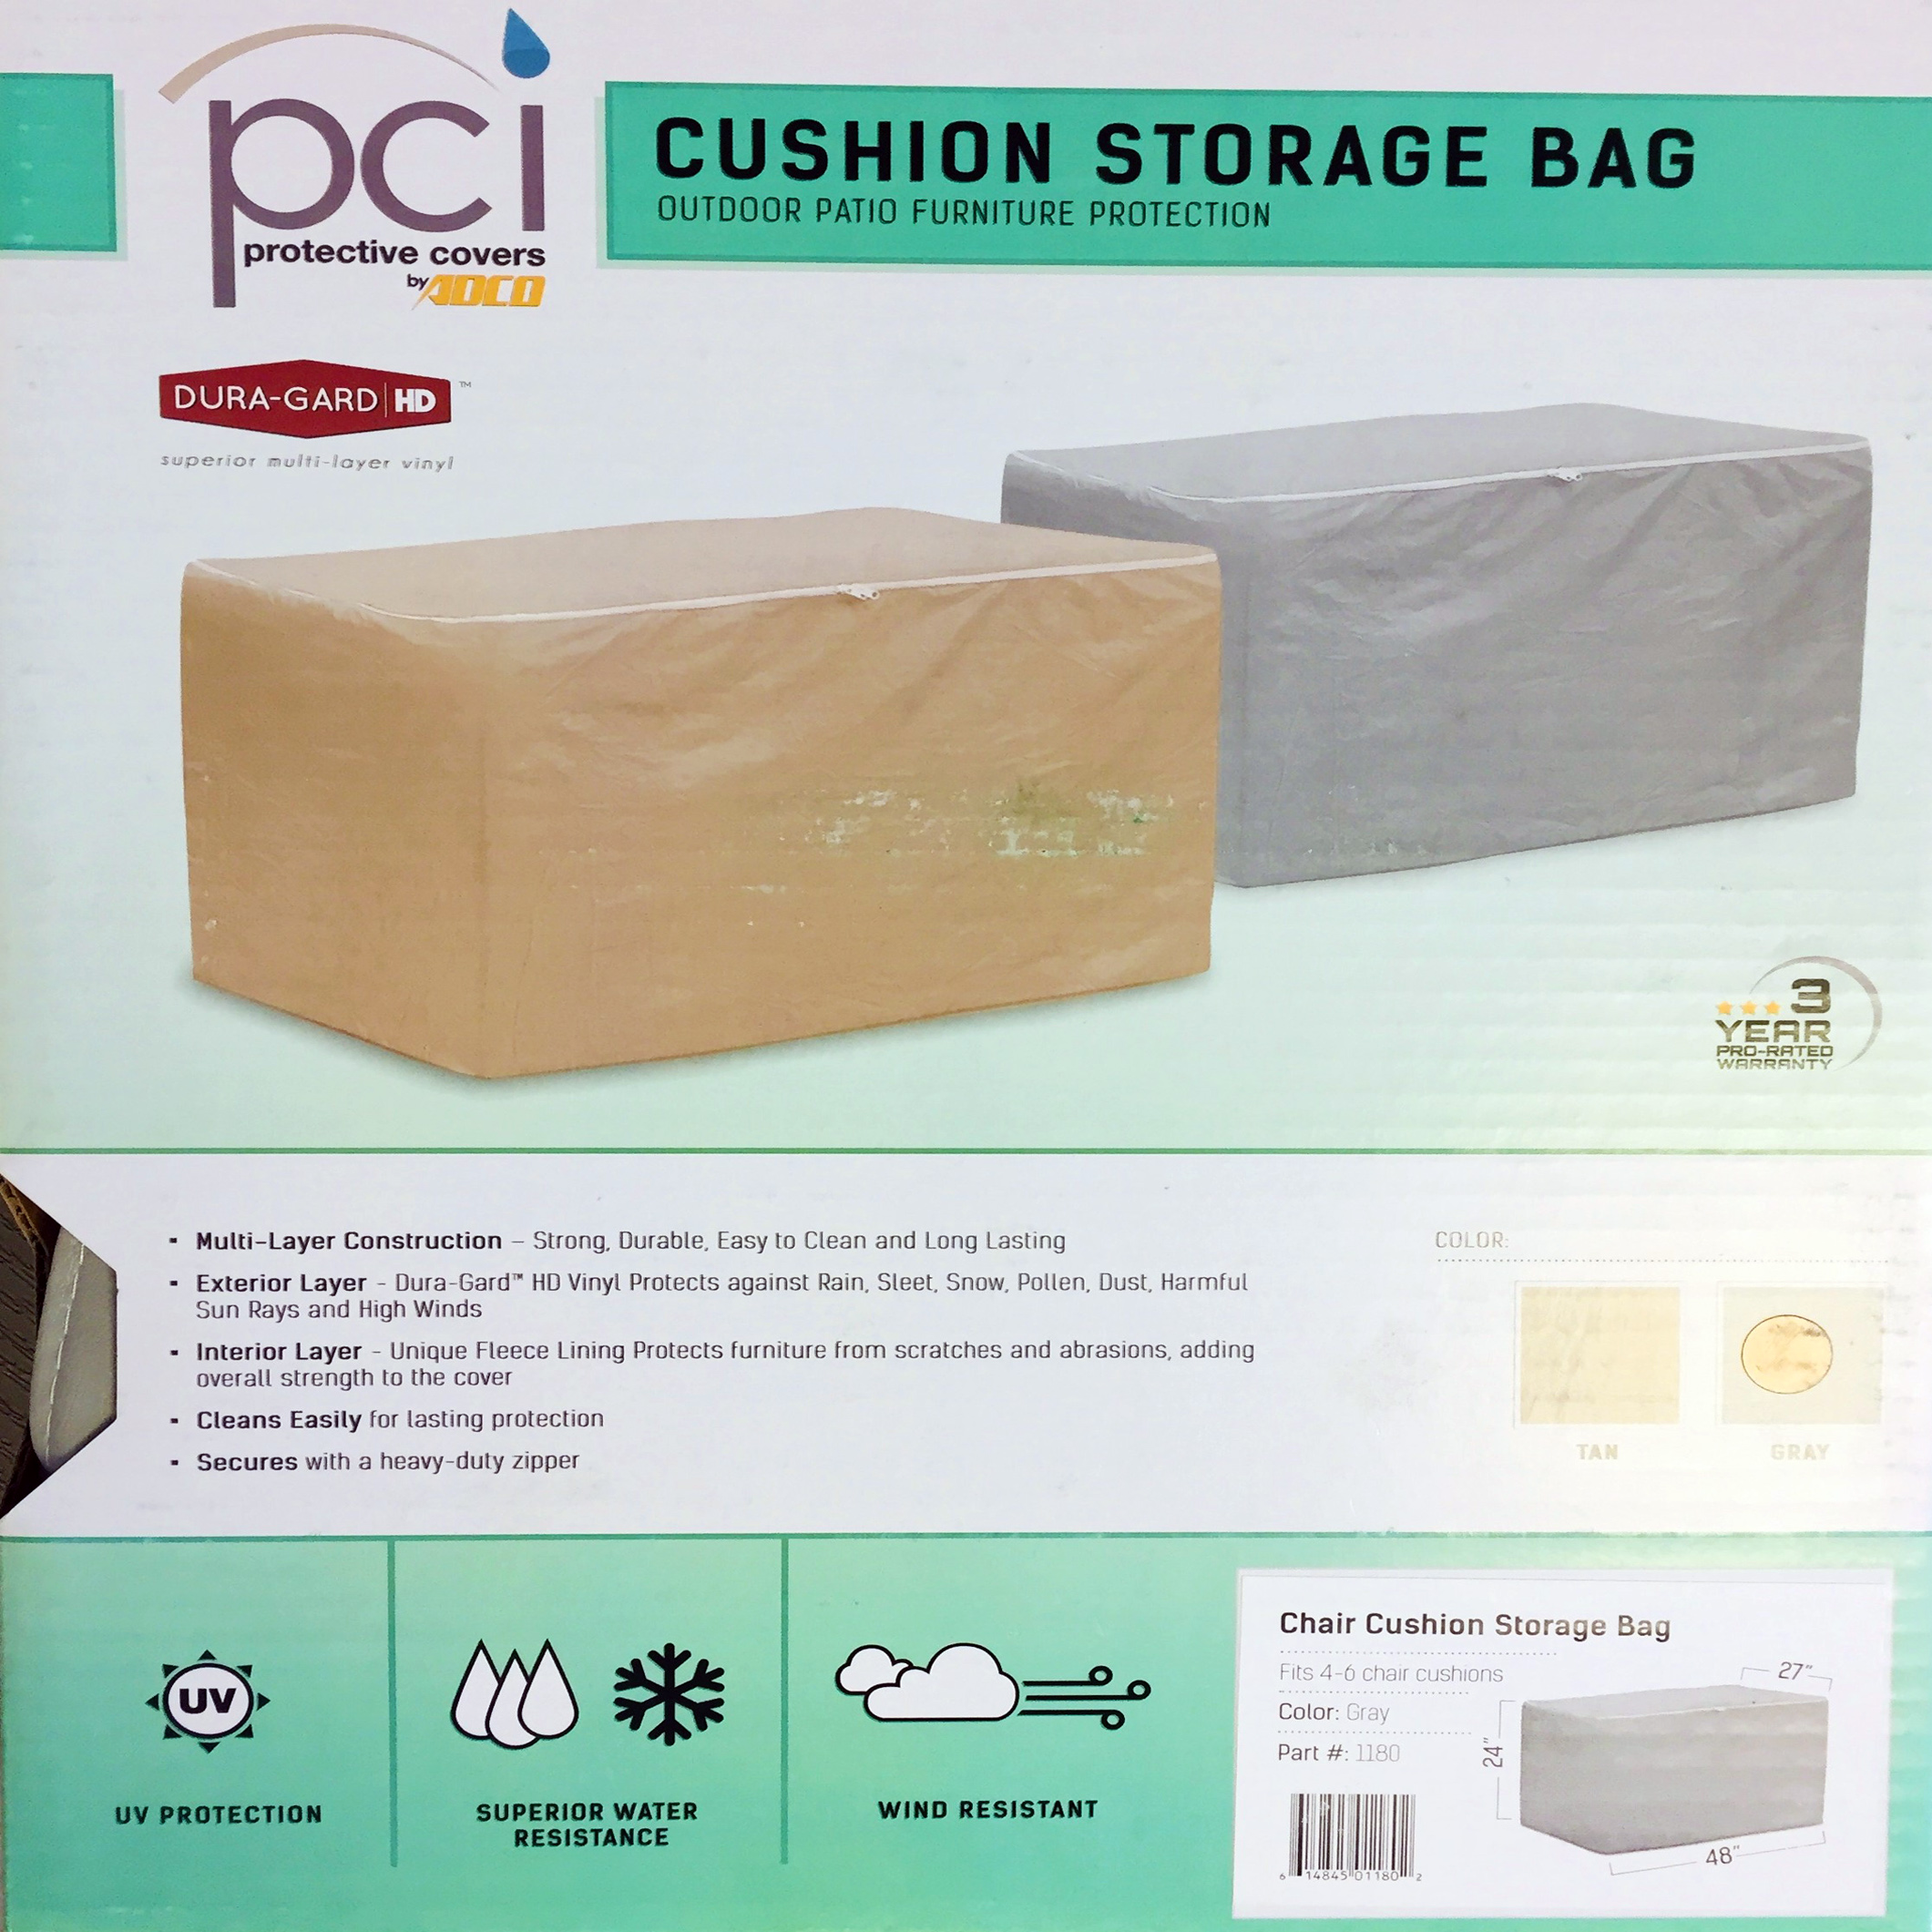 Patio Furniture Accessories Protective Covers Weatherproof Small Storage Bag For Chair Cushions Tan Patio Lawn Garden Elektroelement Com Mk